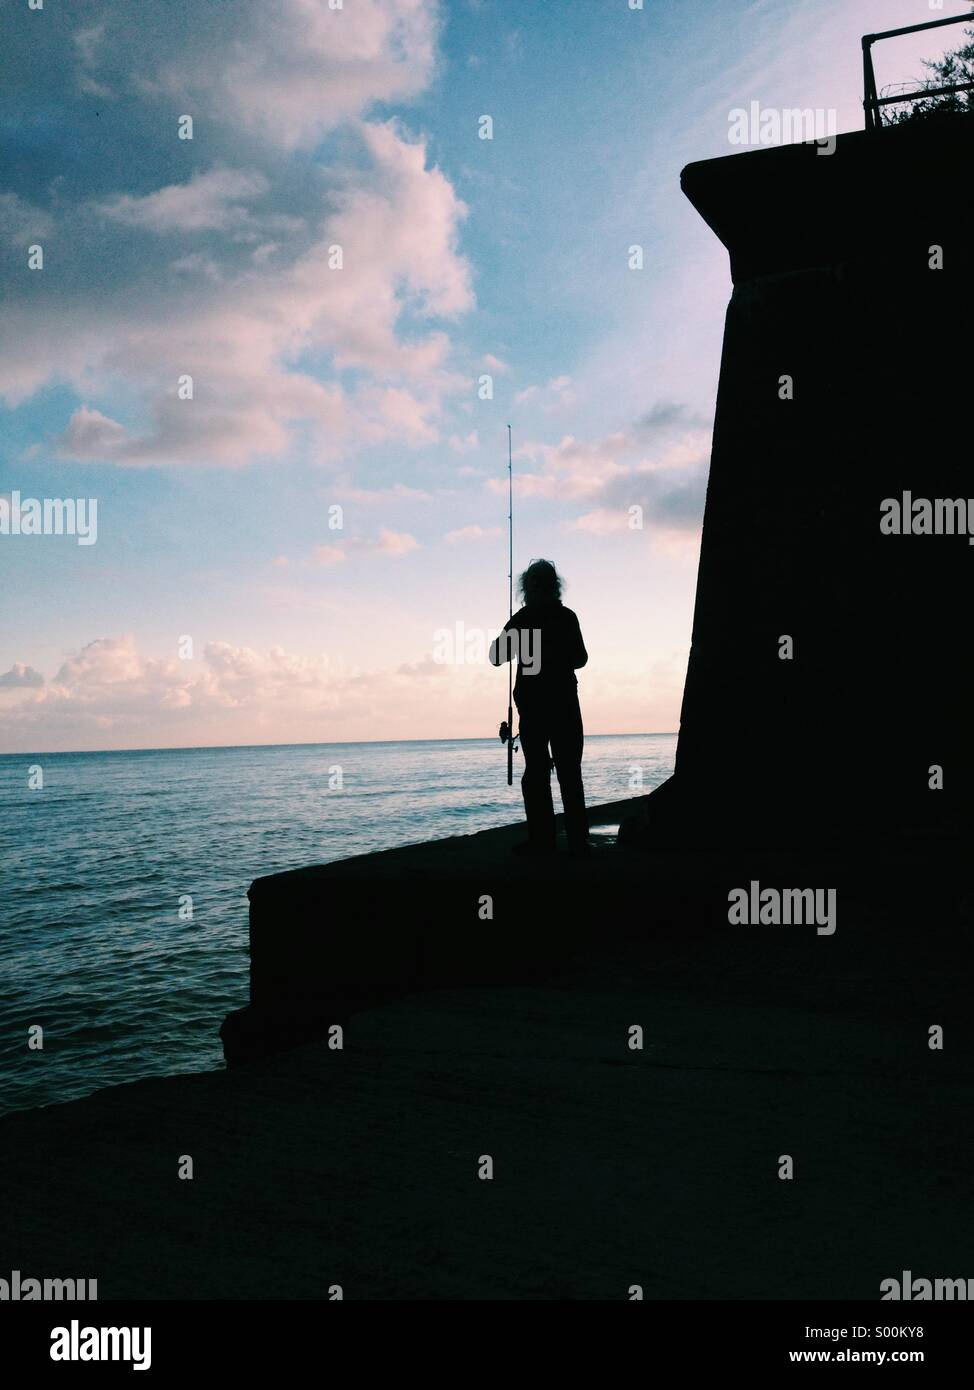 Sillouette of a fisherman by the sea - Stock Image